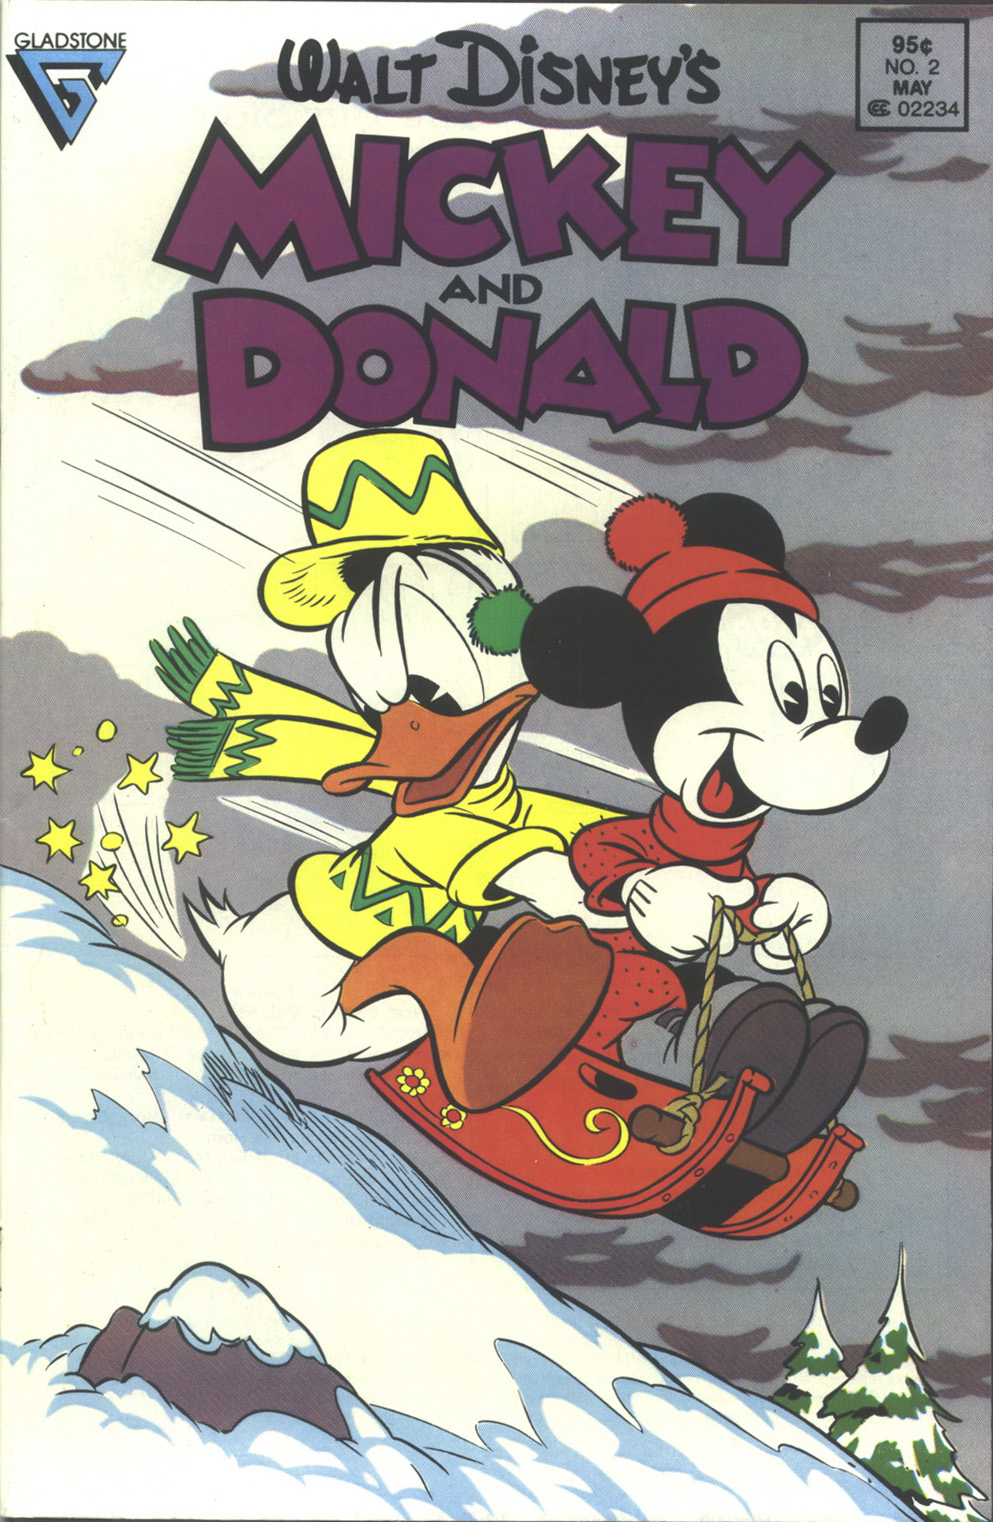 Walt Disneys Mickey and Donald issue 2 - Page 1